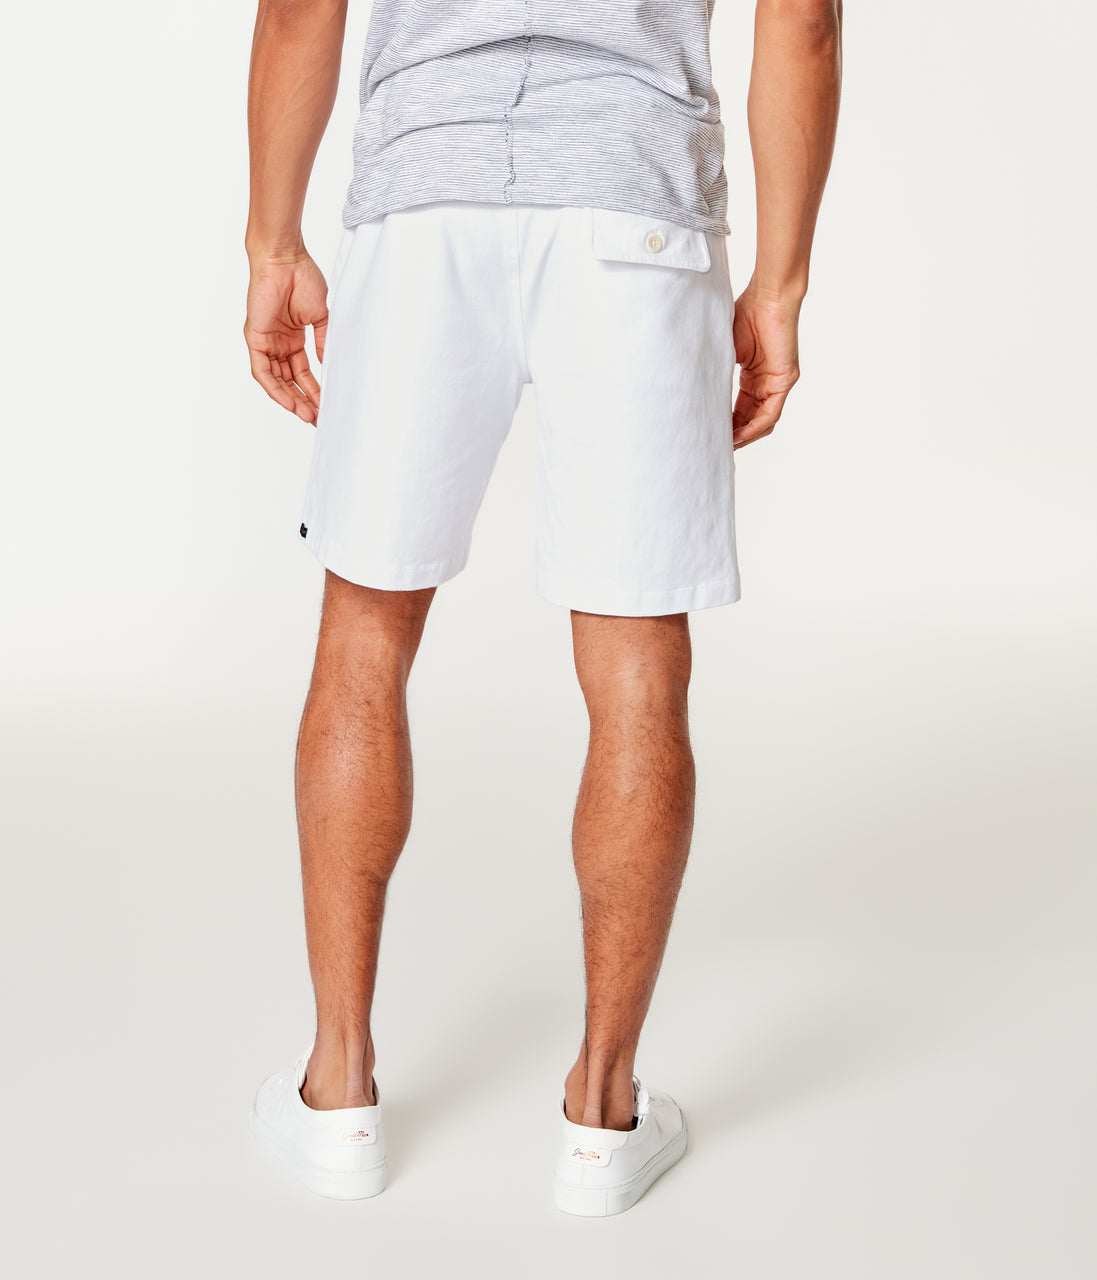 Flex Pro Jersey Tulum Trunk - White - Good Man Brand - Flex Pro Jersey Tulum Trunk - White